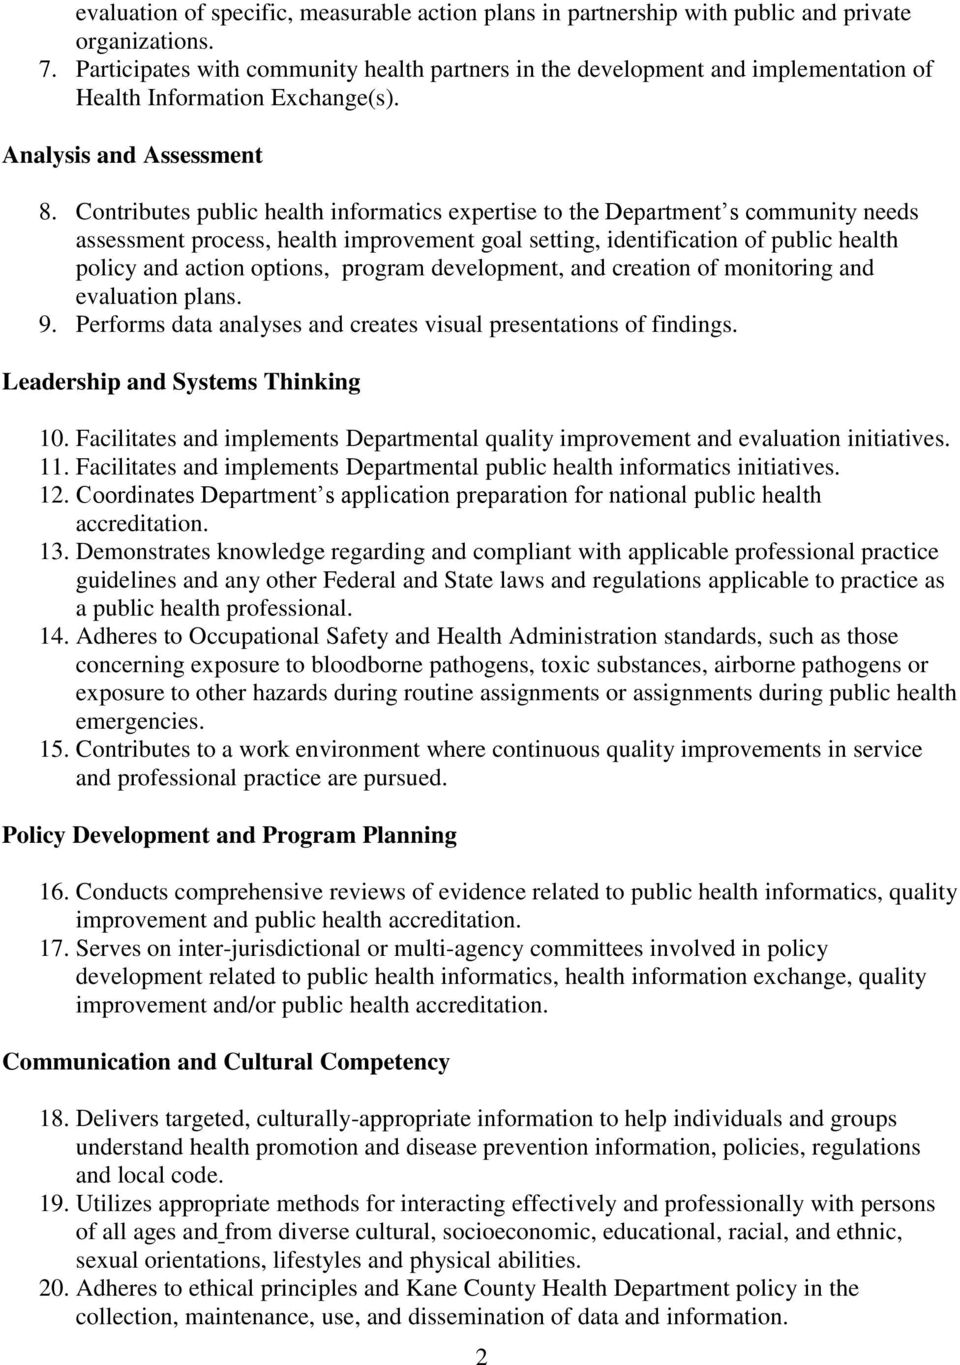 Contributes public health informatics expertise to the Department s community needs assessment process, health improvement goal setting, identification of public health policy and action options,